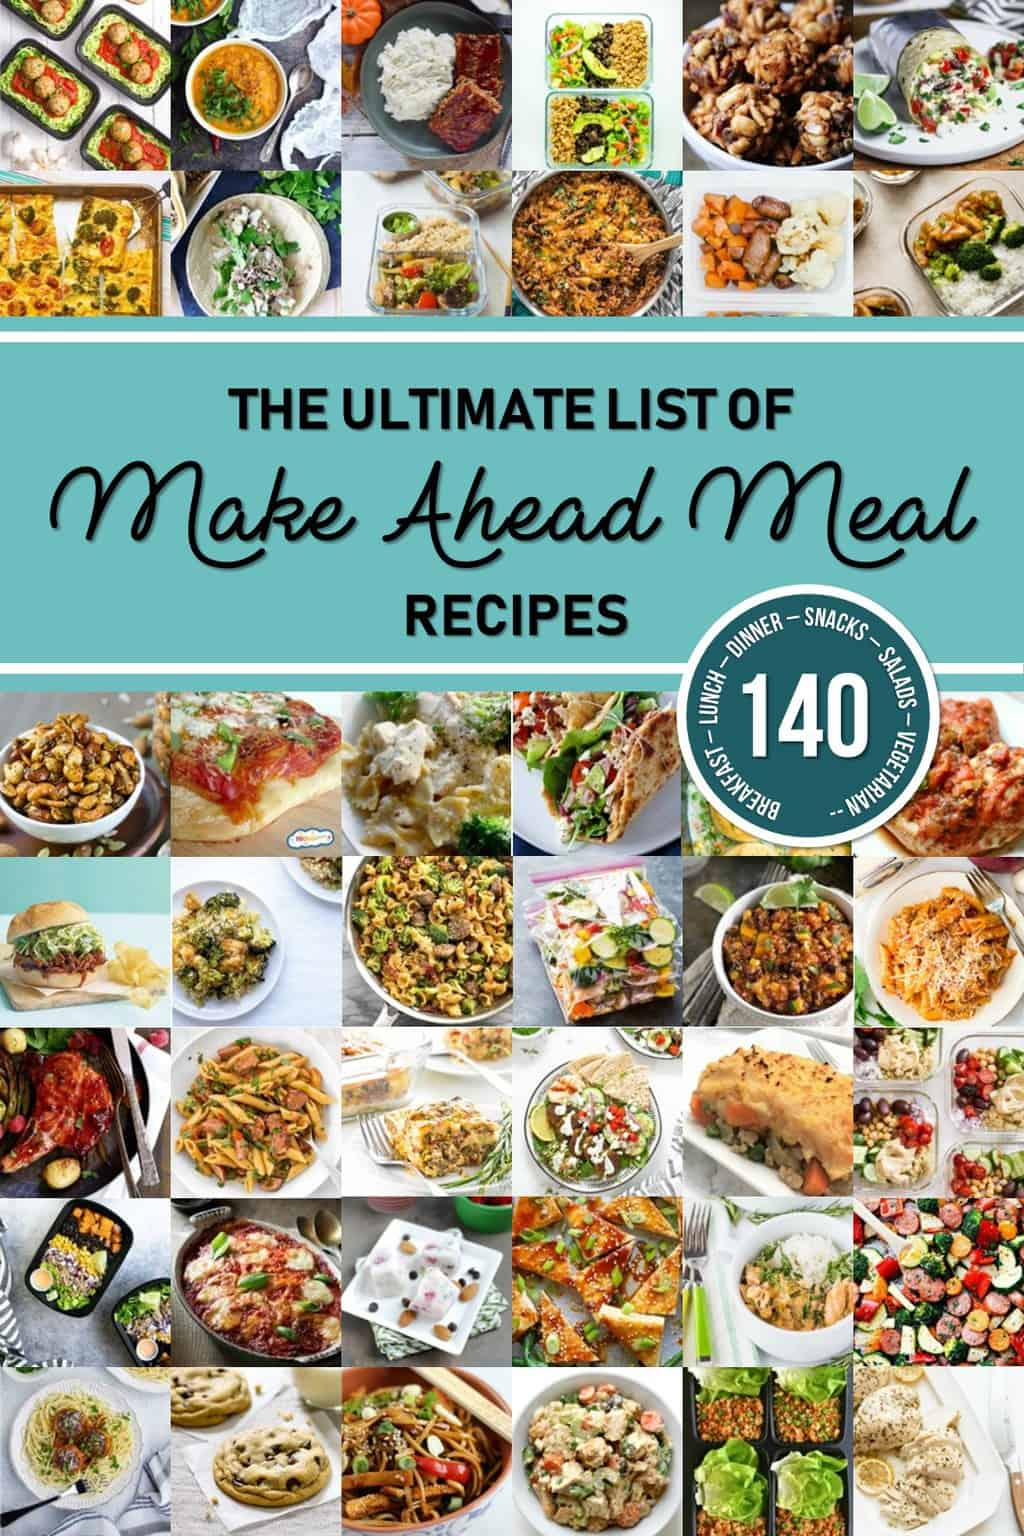 An incredible list of make-ahead meal recipes for meal prep Sunday! Everything from all kinds of dinner recipes to breakfast, lunches, and snacks. Perfect for meal planning! #smartmoneymamas #mealplanning #mealprep #recipeideas #familyrecipes